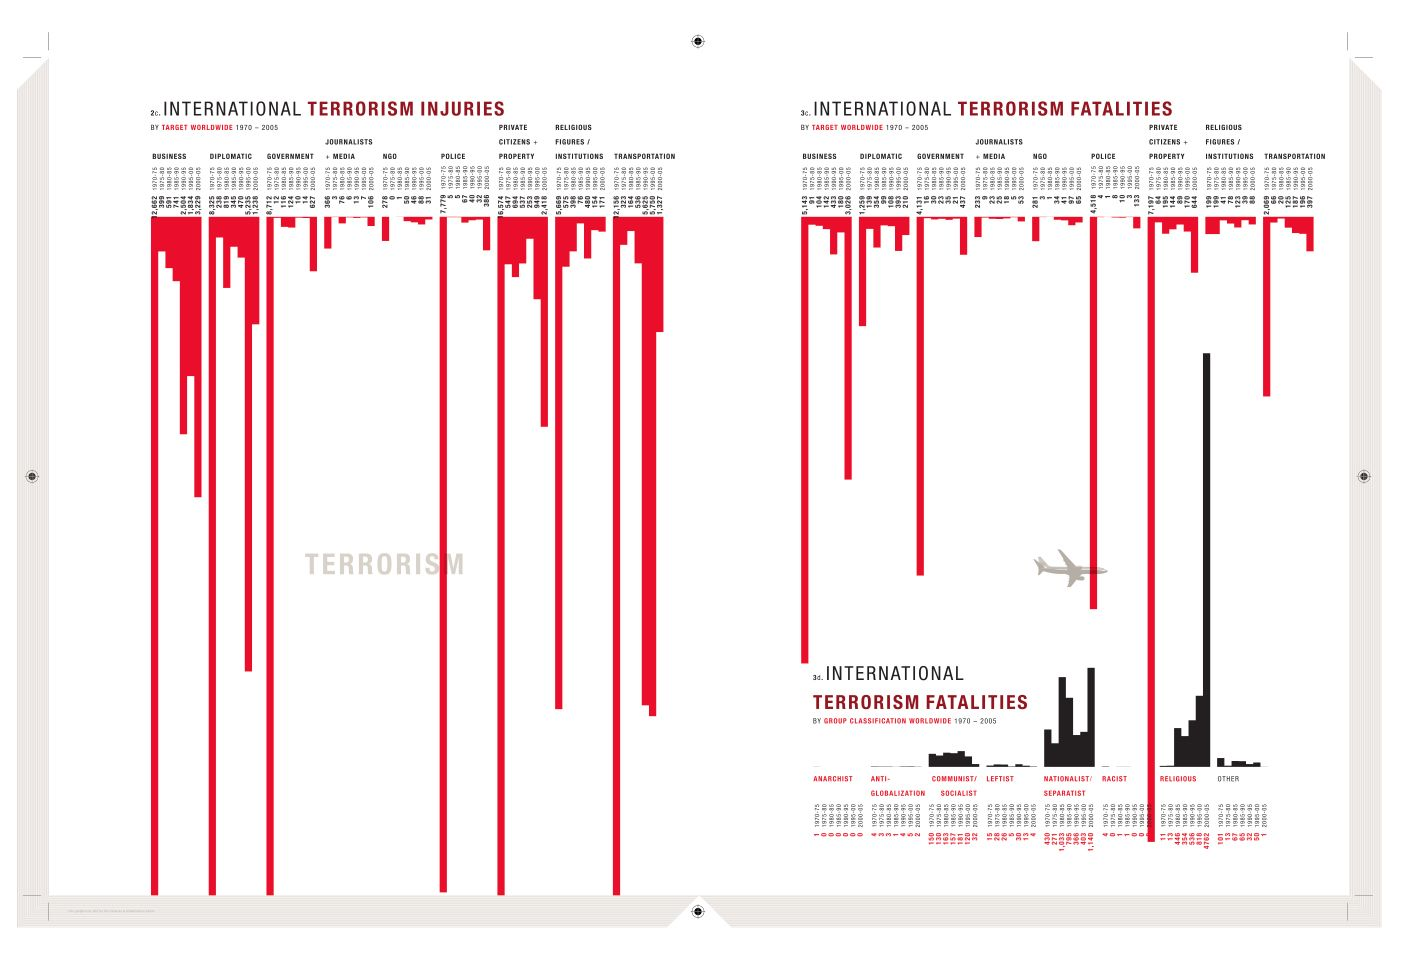 Pin by jody strauch on school media design pinterest lucass design one of the infographics i did for ucla public policy its a simple bar graph but by turning it upside down and choosing the color red it ccuart Gallery